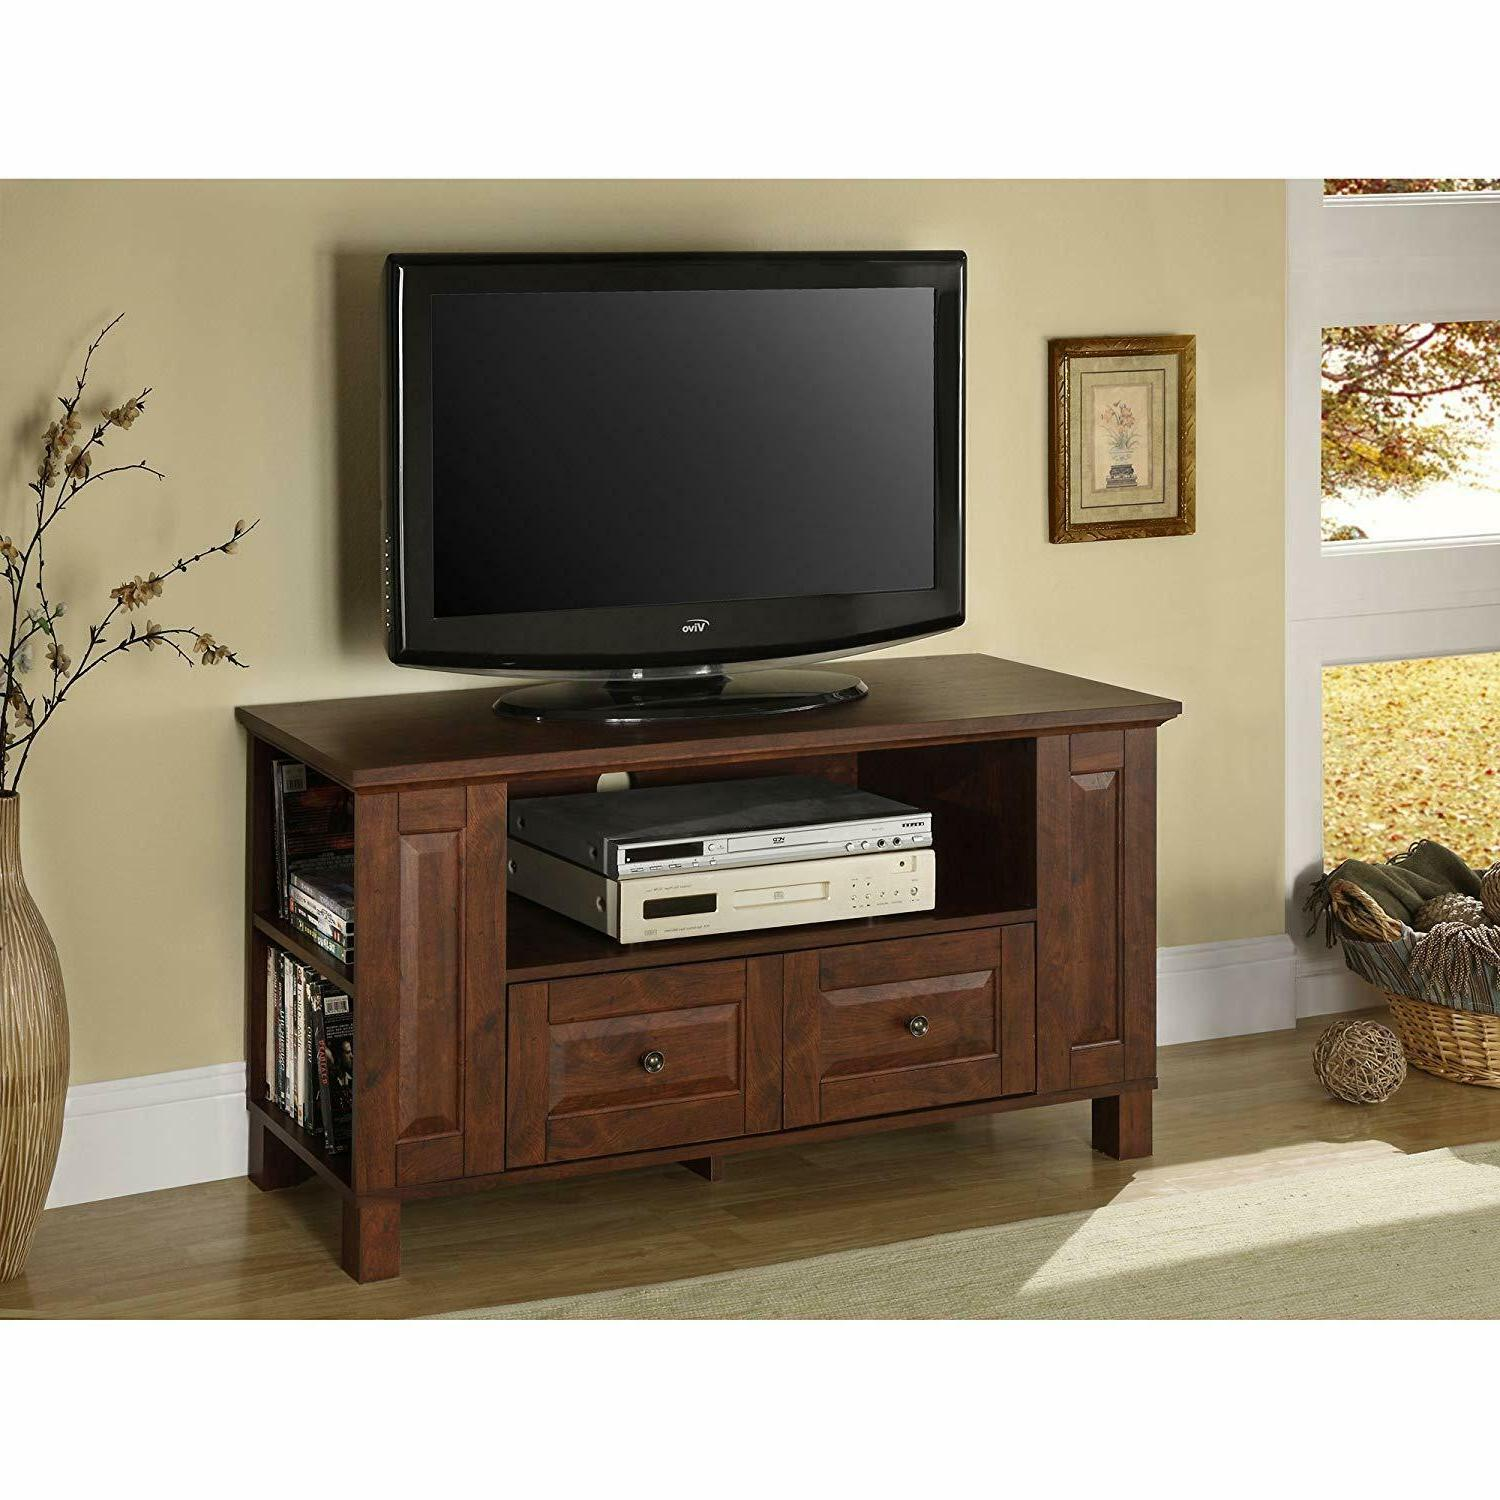 Walker Columbus TV Stand Console New